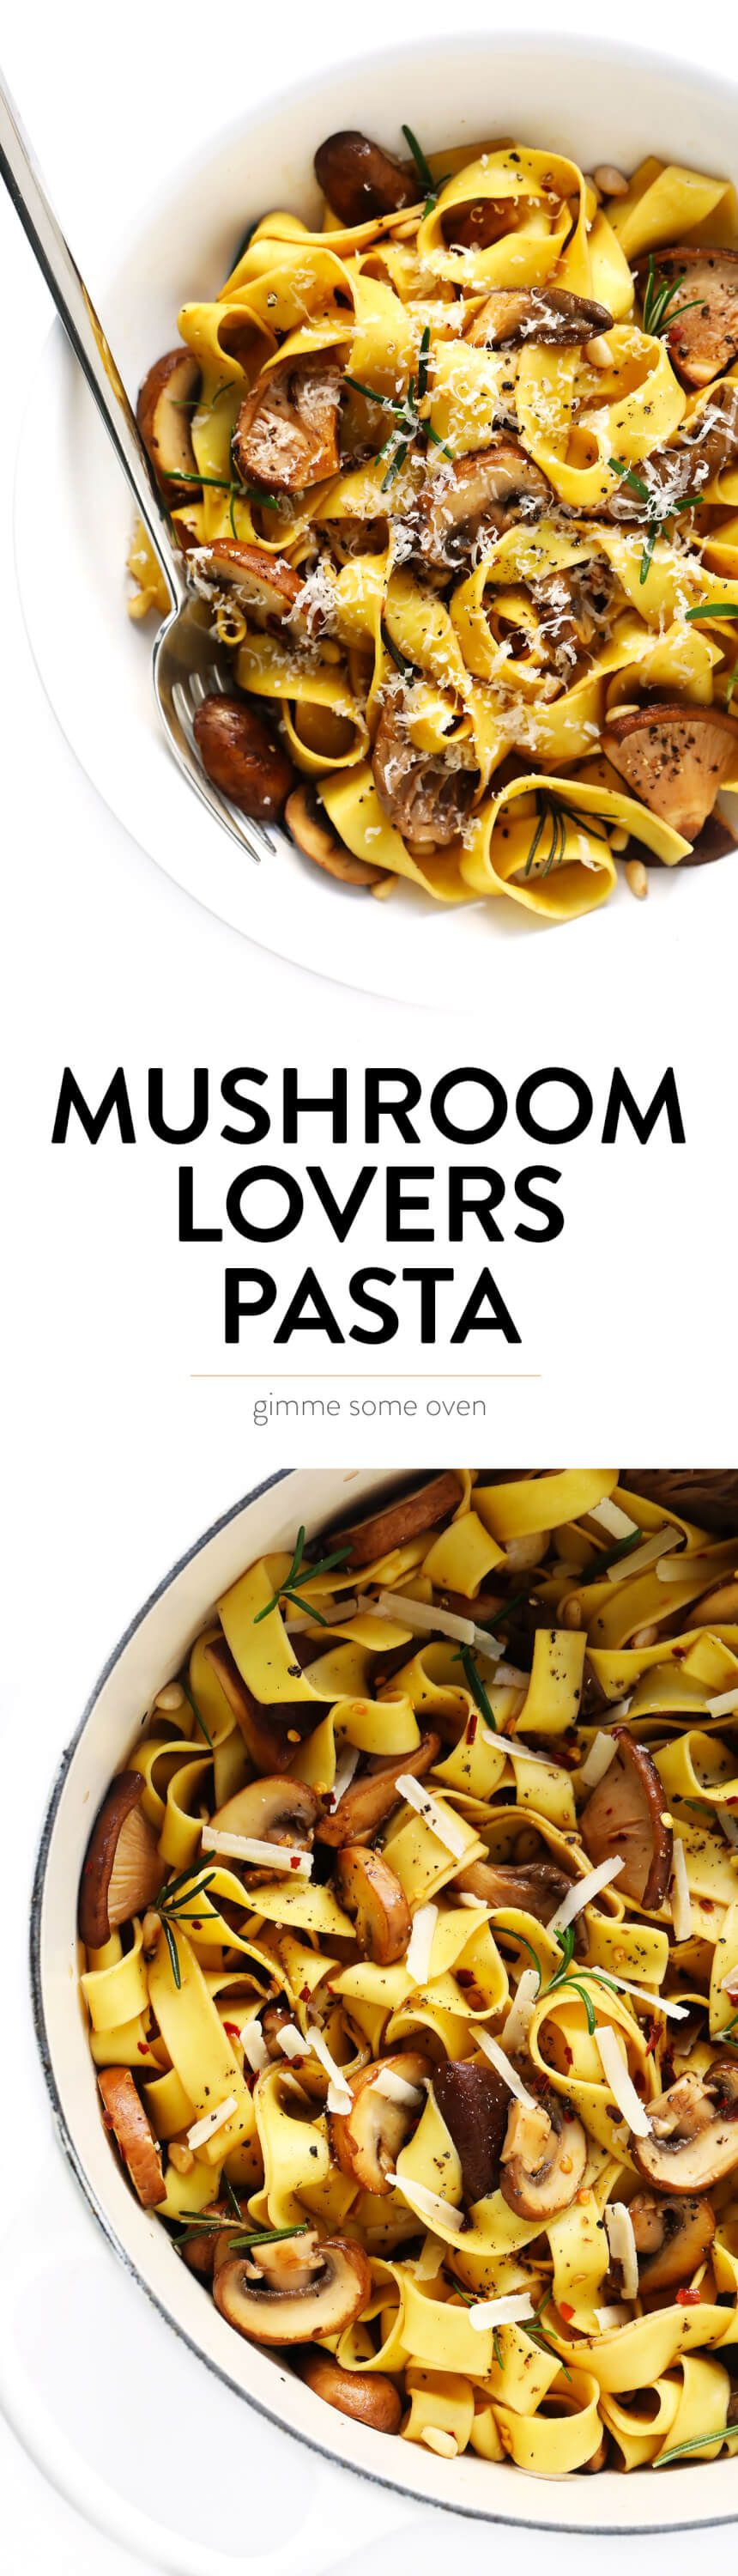 This Mushroom Lovers Pasta recipe is tossed with a heavenly rosemary balsamic butter sauce, lots of